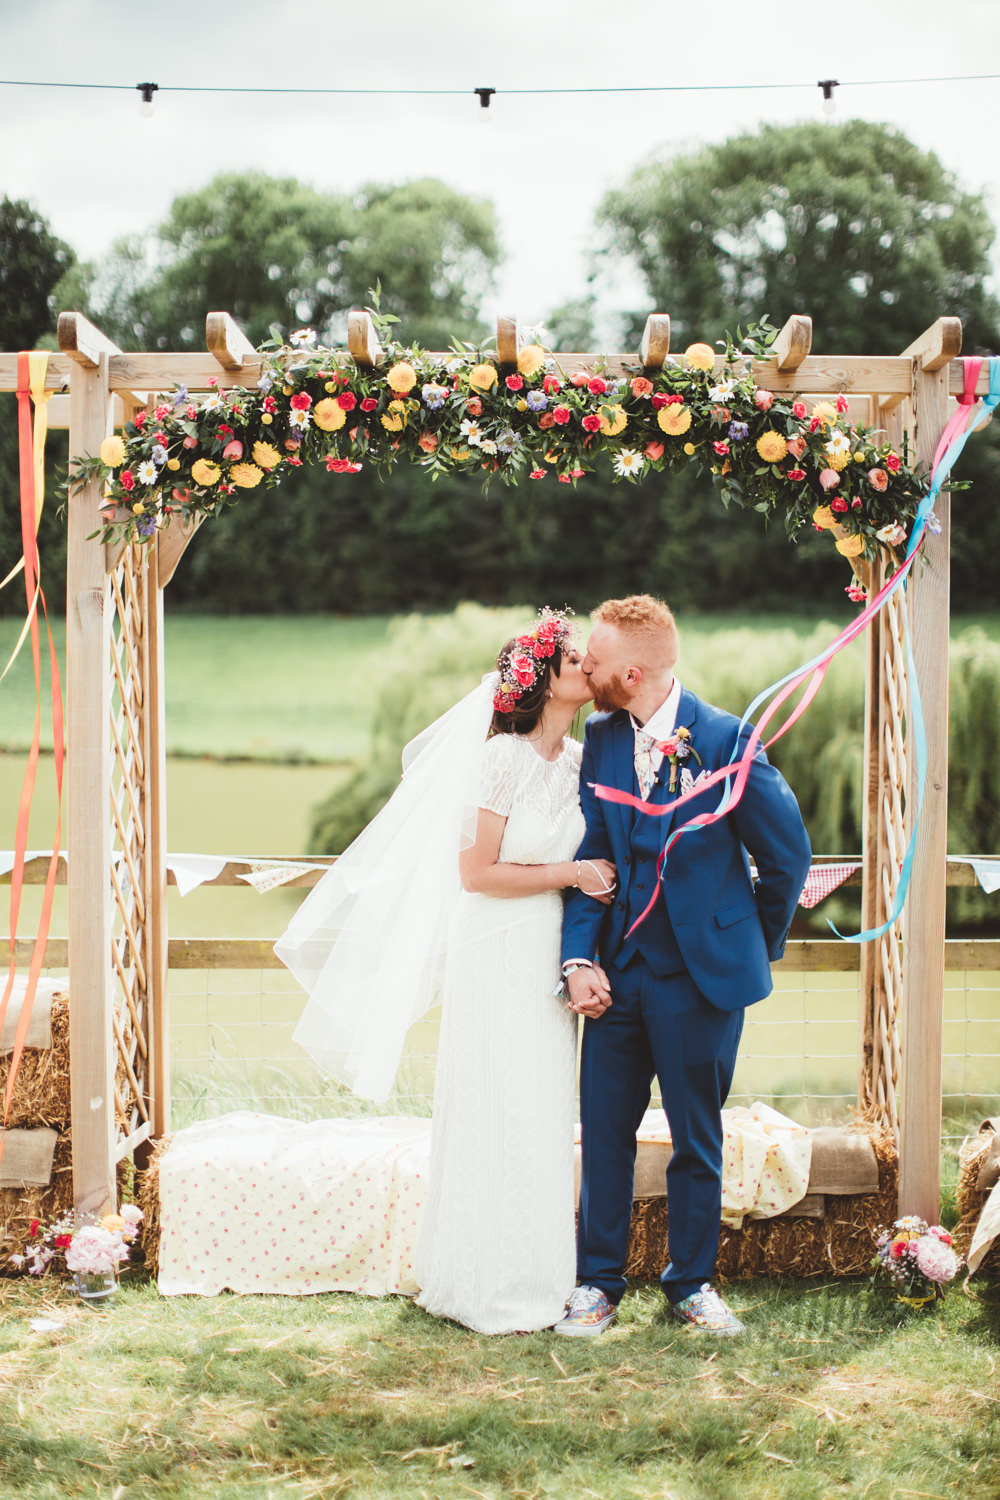 This cheerful summer festival wedding was filled with bright blooms and lots of fun touches